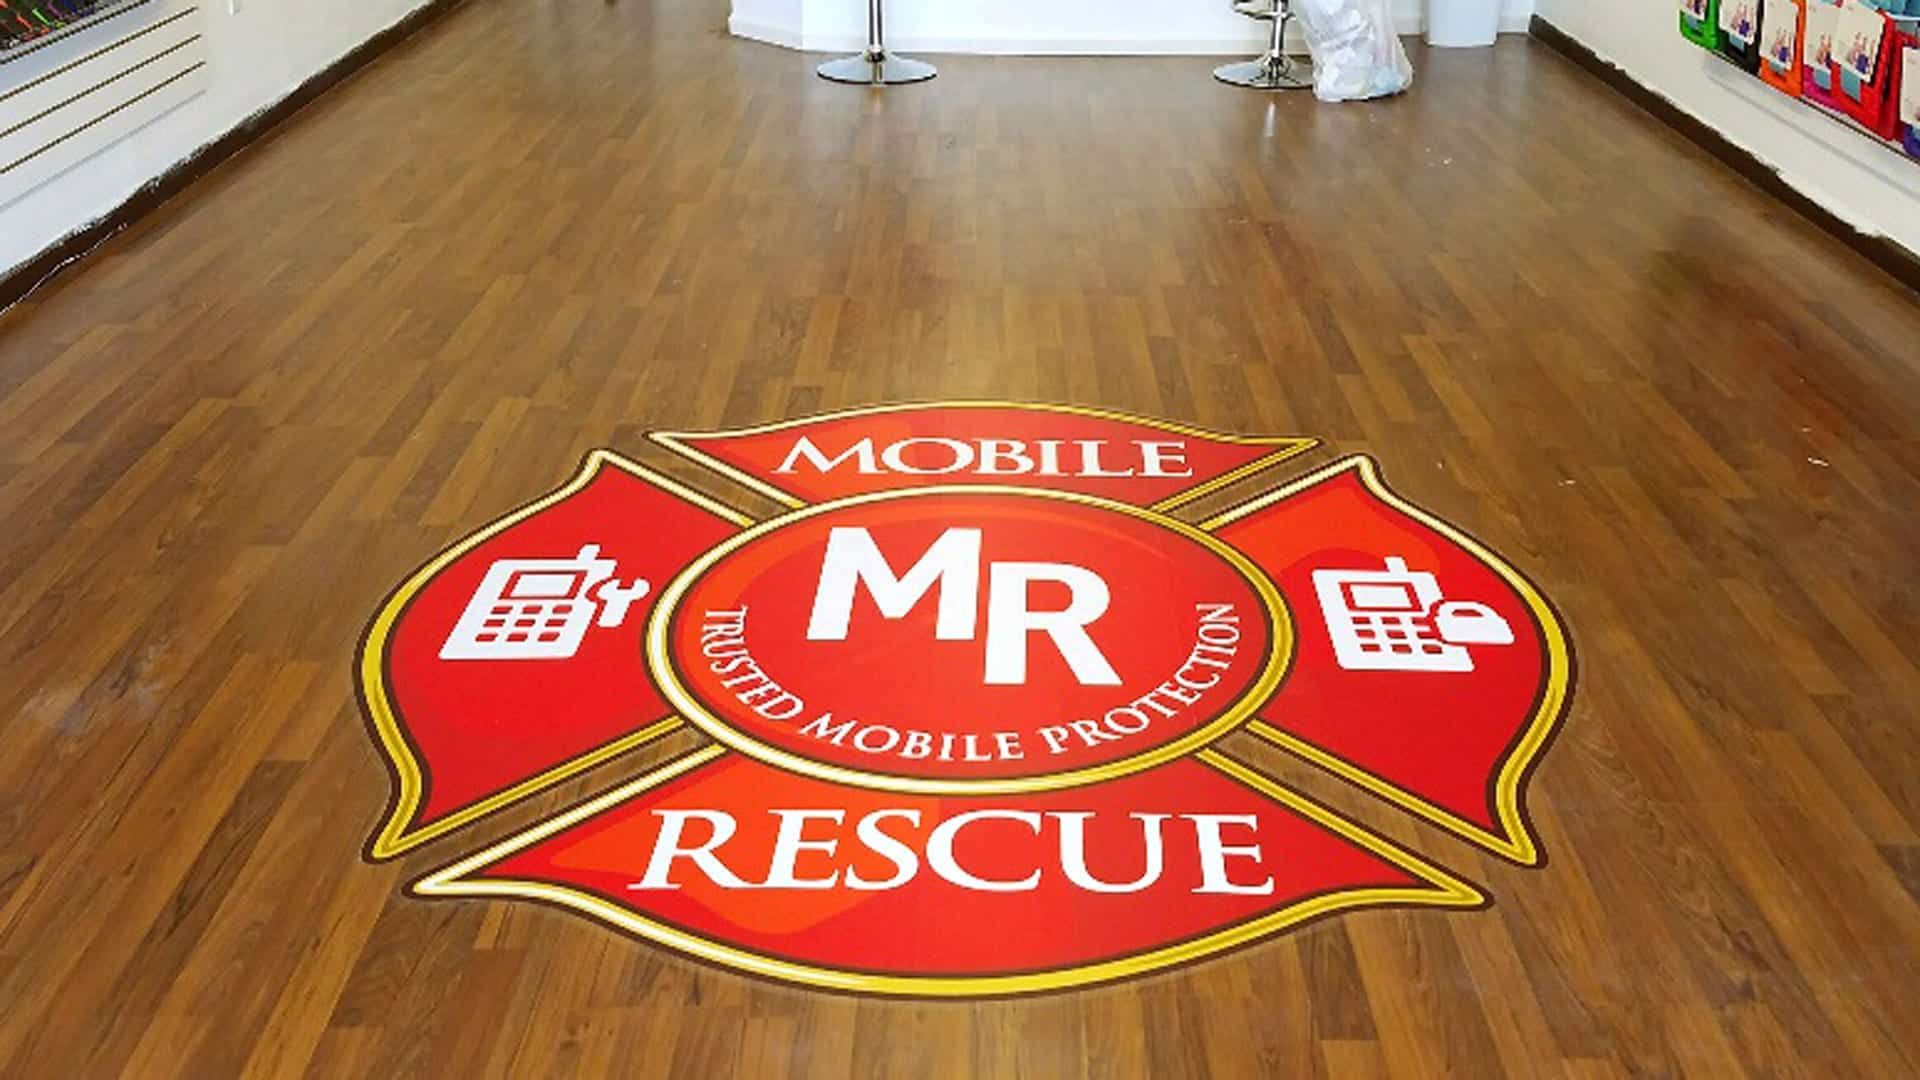 Floor graphic of the Mobile Rescue Logo